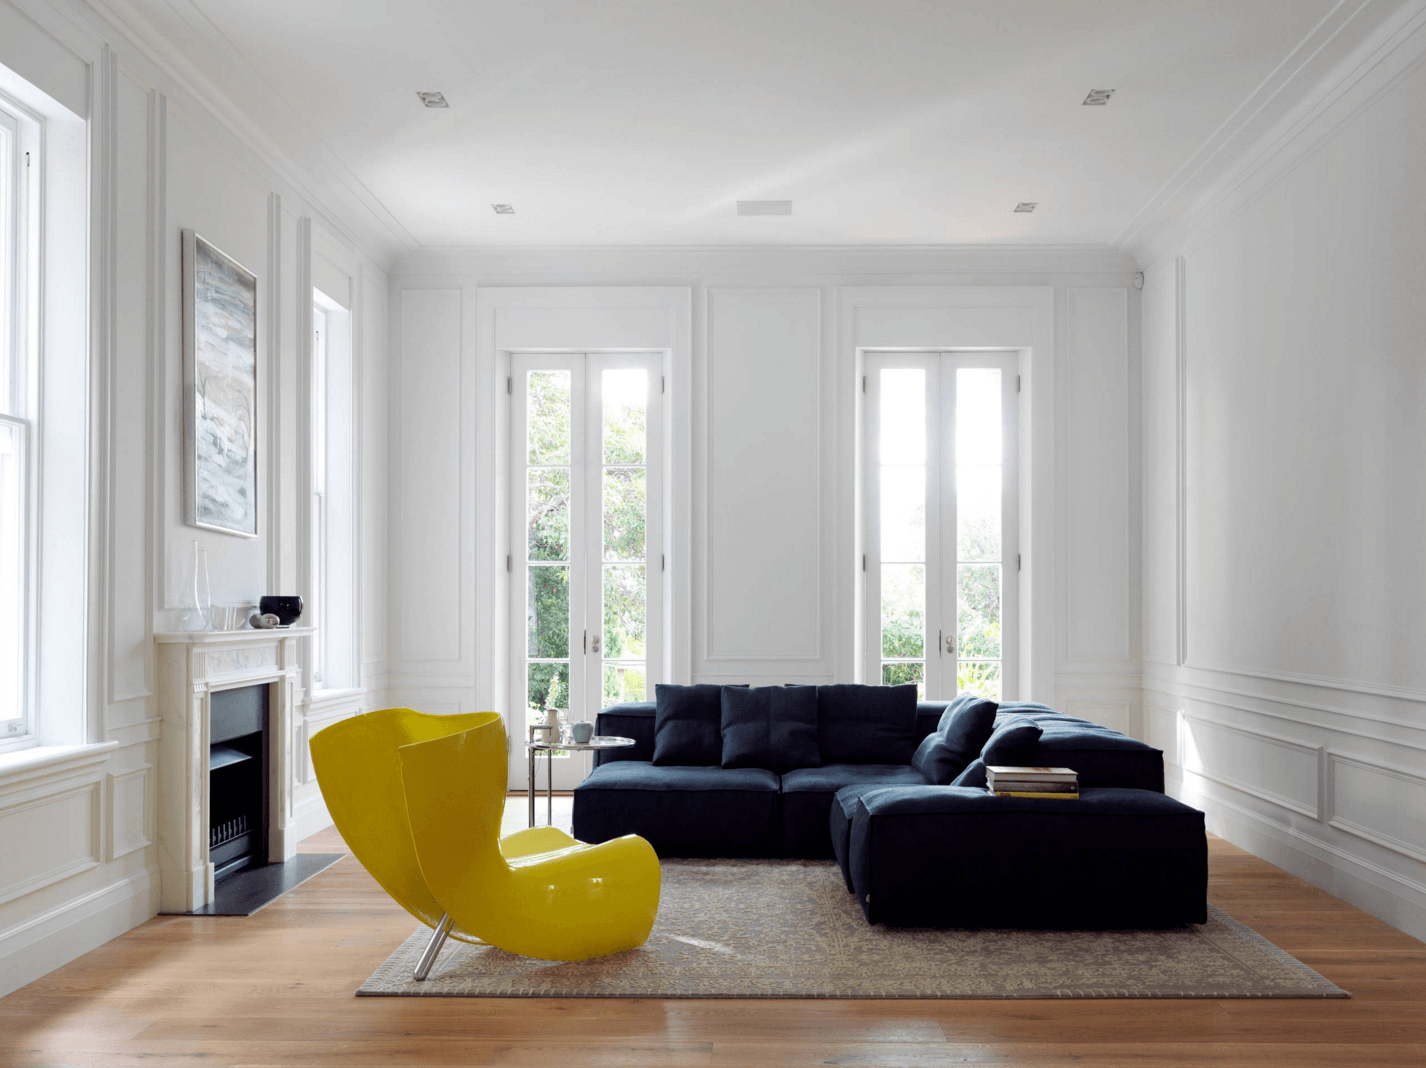 25 Examples Of Minimalism In Interior Design Freshome